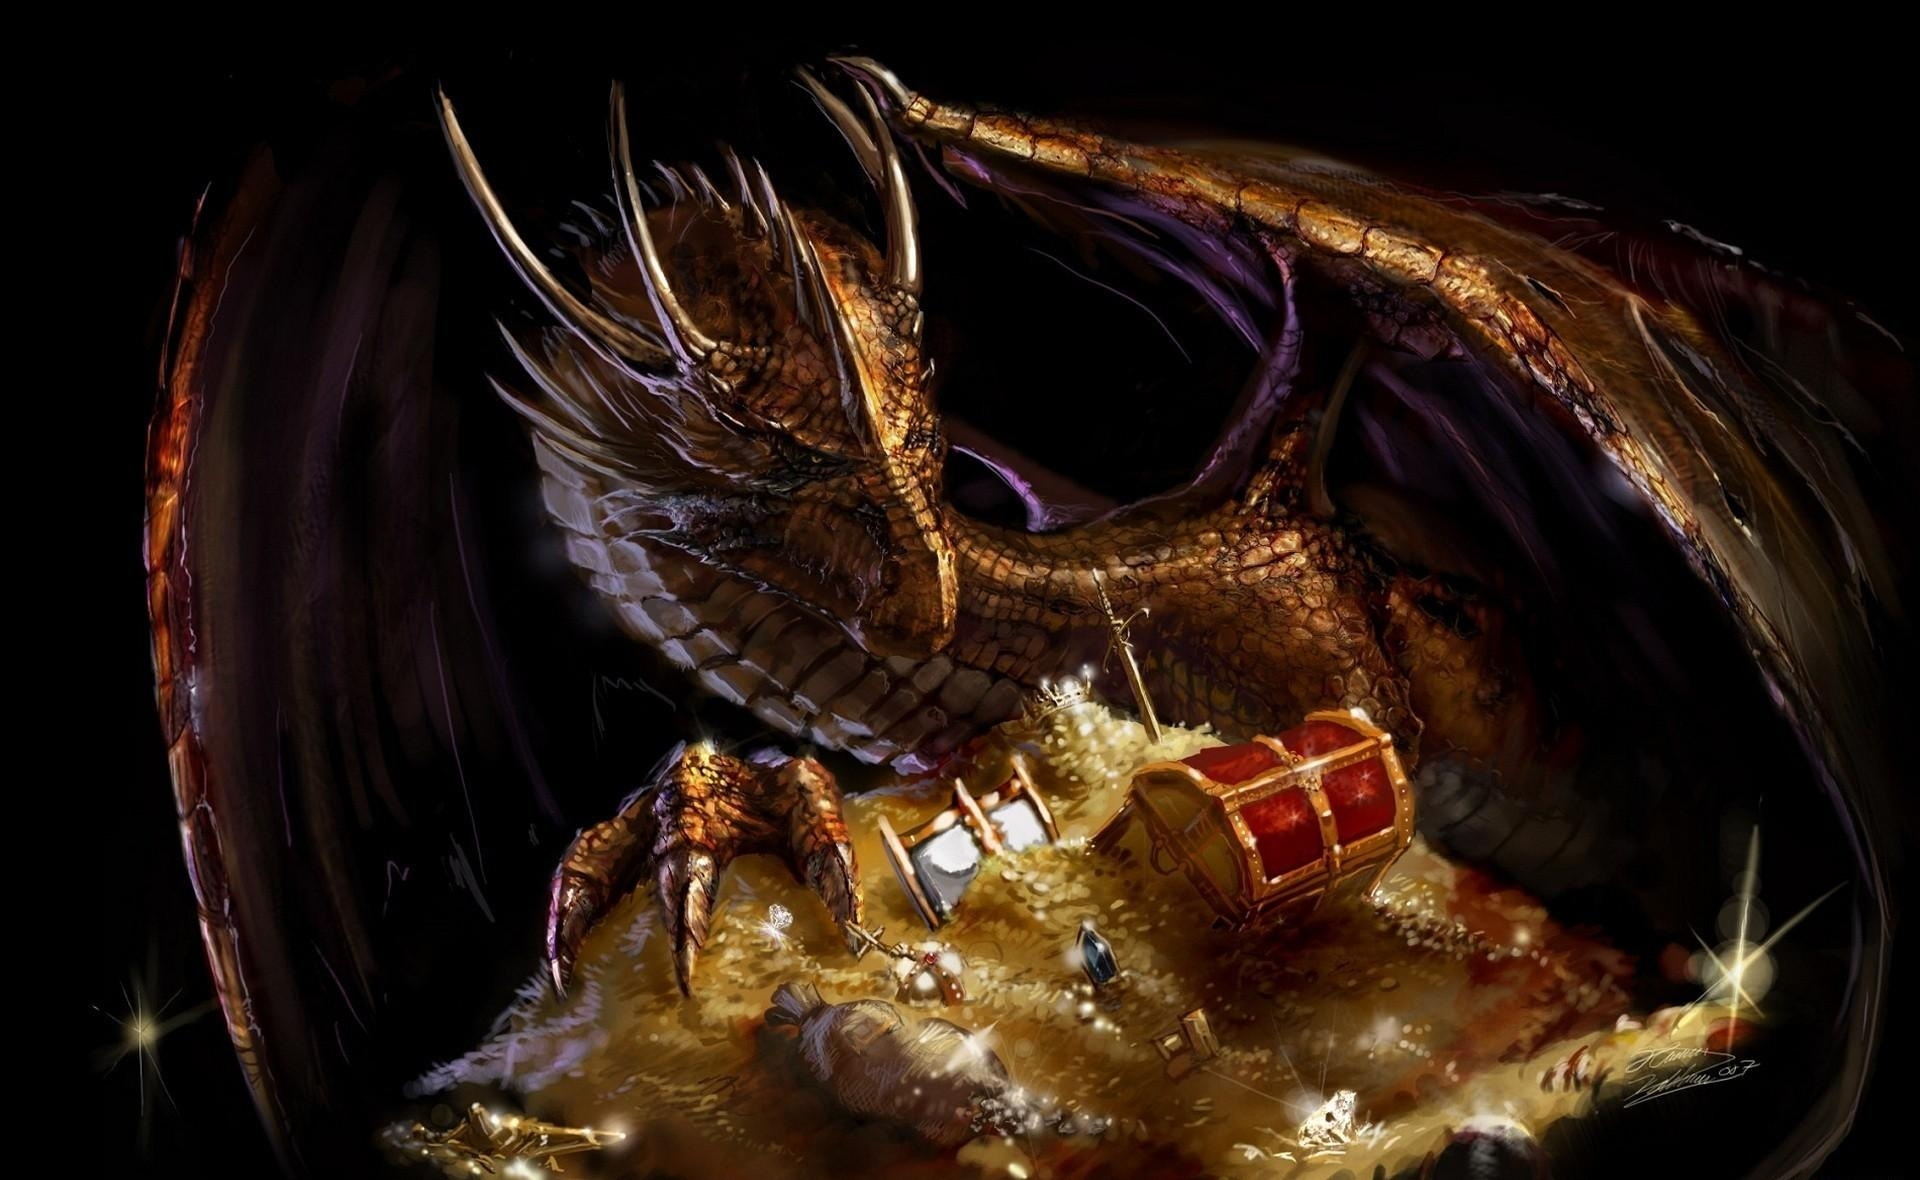 51484 download wallpaper Fantasy, Dragon, Treasure, Gold screensavers and pictures for free